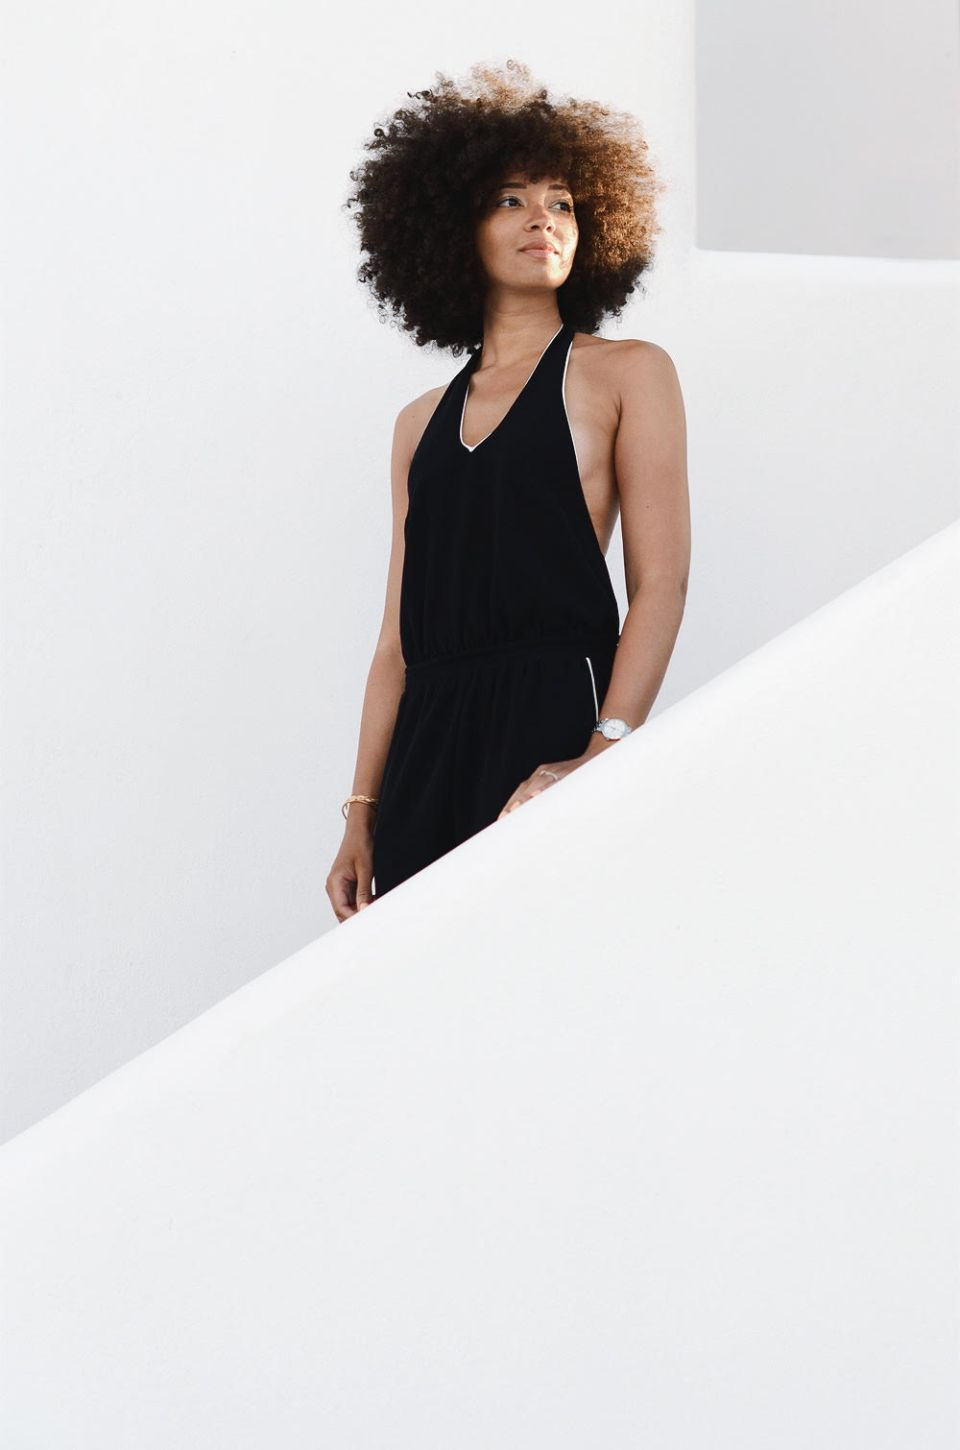 mercredie-blog-mode-geneve-suisse-switzerland-geneva-blogger-swiss-h&m-jumpsuit-combinaison-afro-natural-hair-cheveux-frises-naturels-mykonos-absolut-suites-escalier-greece-grece